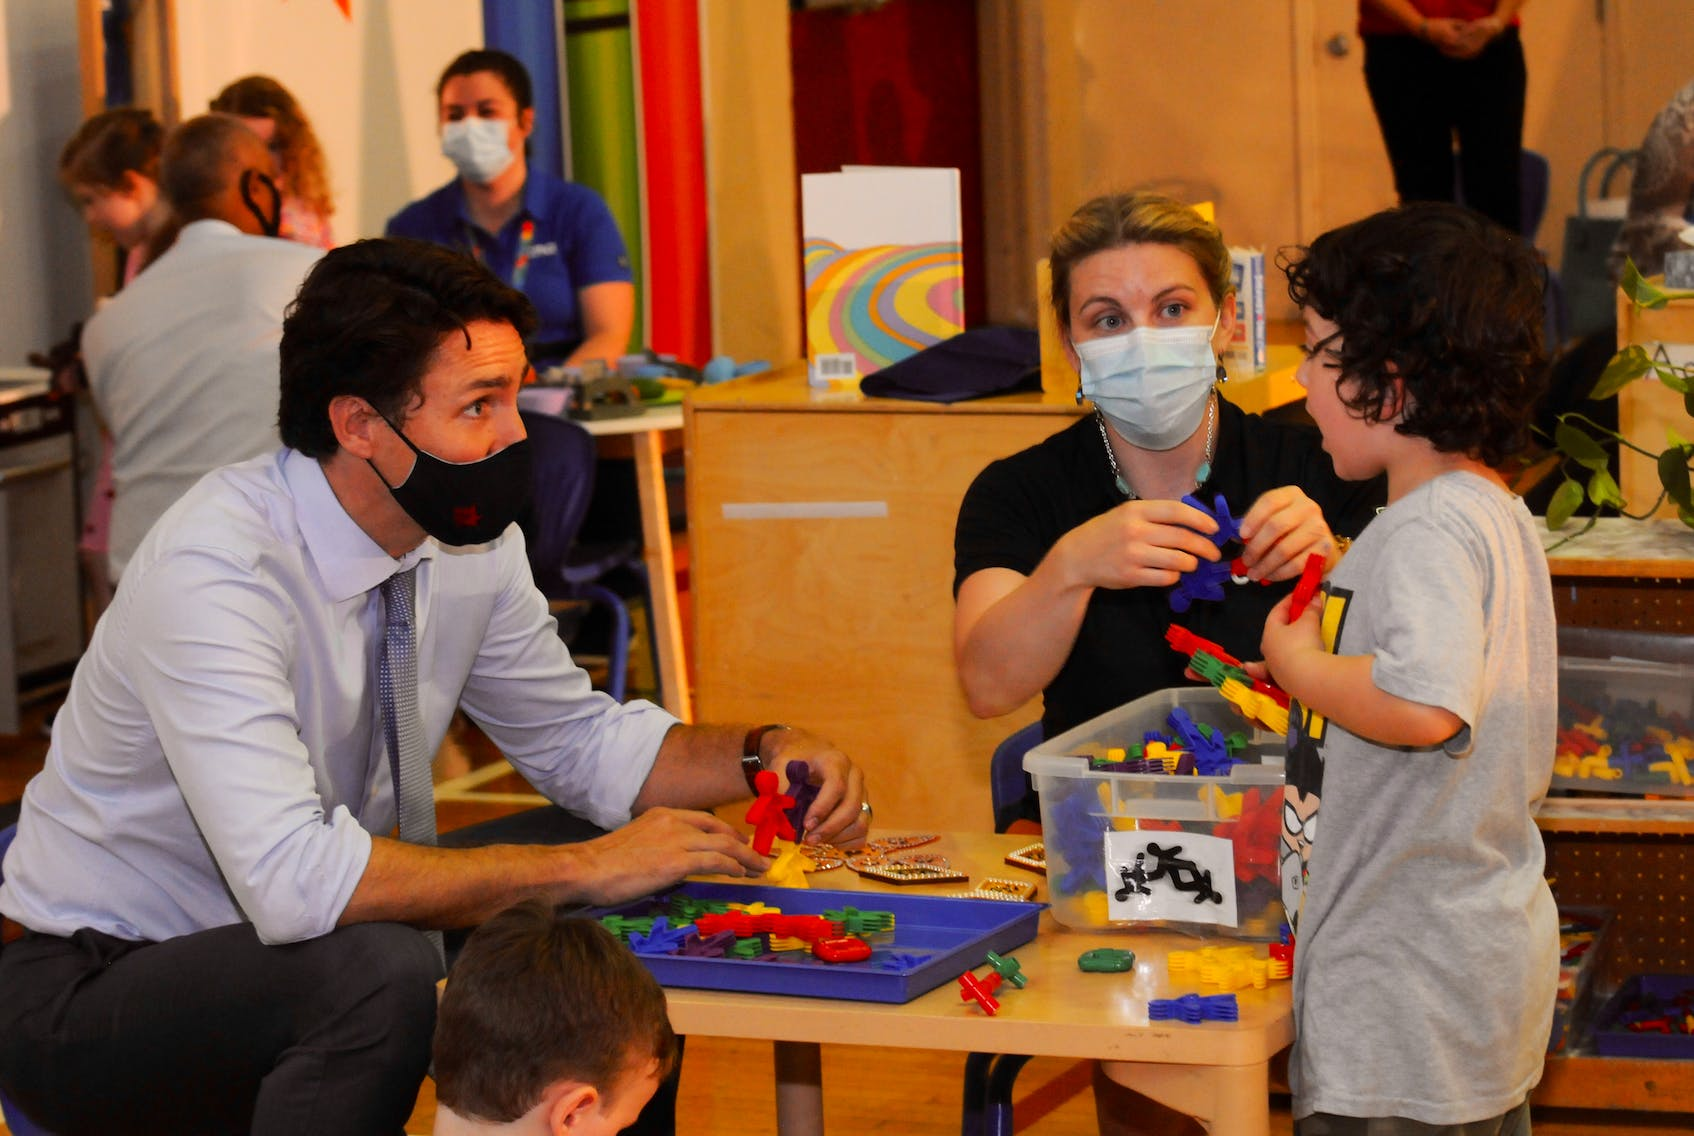 Prime Minister Justin Trudeau talks to a child in St. John's prior to a child care funding announcement, as early childhood educator Hilary Bartlett looks on. — SaltWire Network file photo